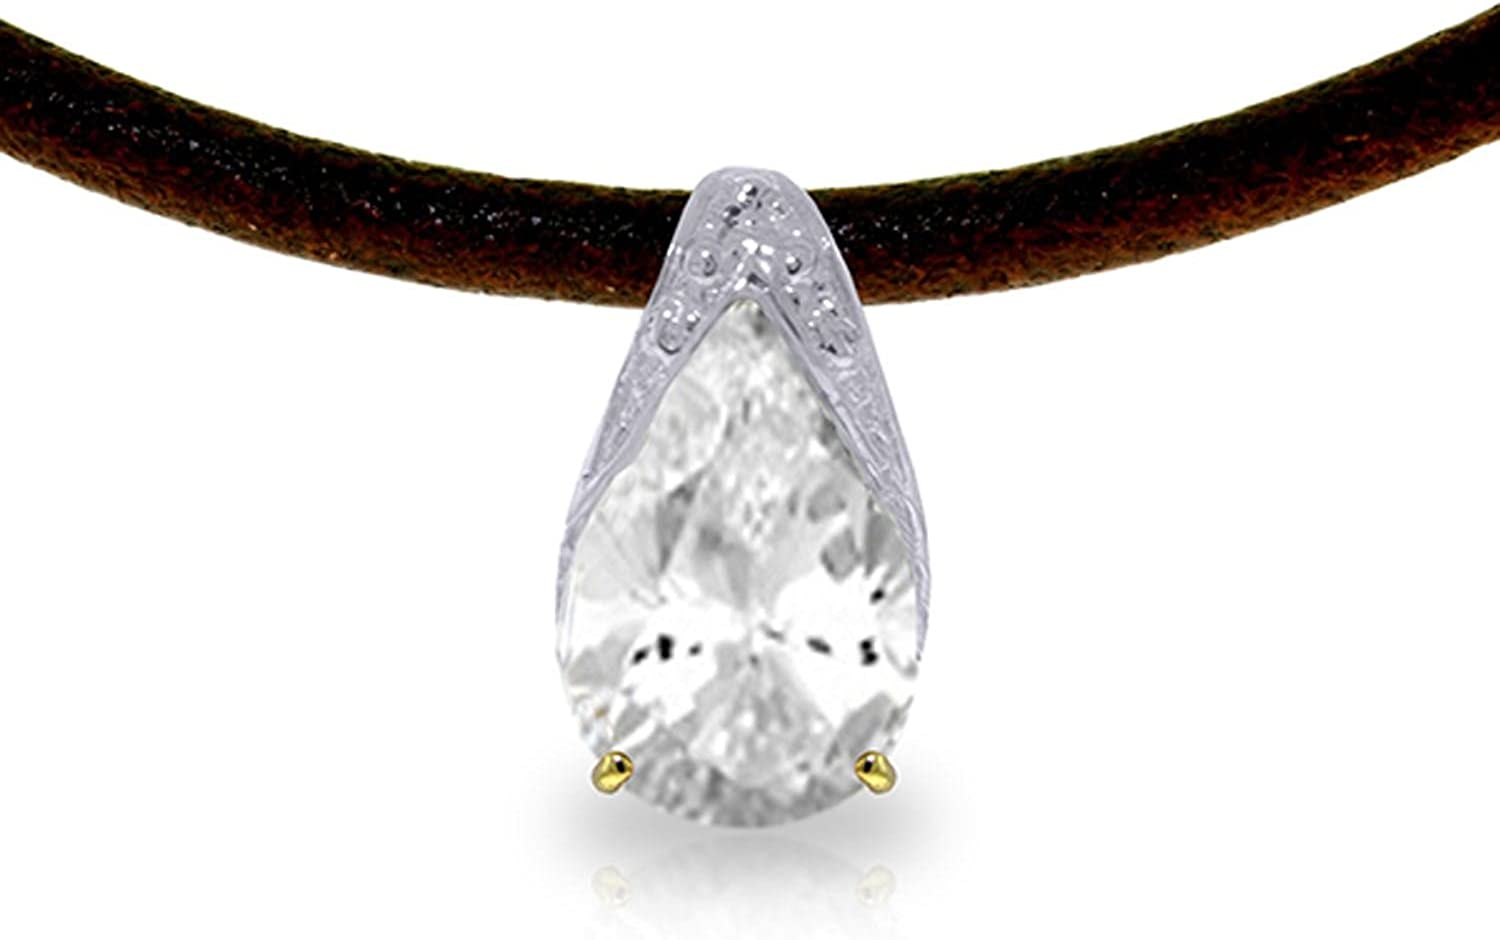 ALARRI 6 Carat 14K Solid Gold Leather Necklace White Topaz with 20 Inch Chain Length